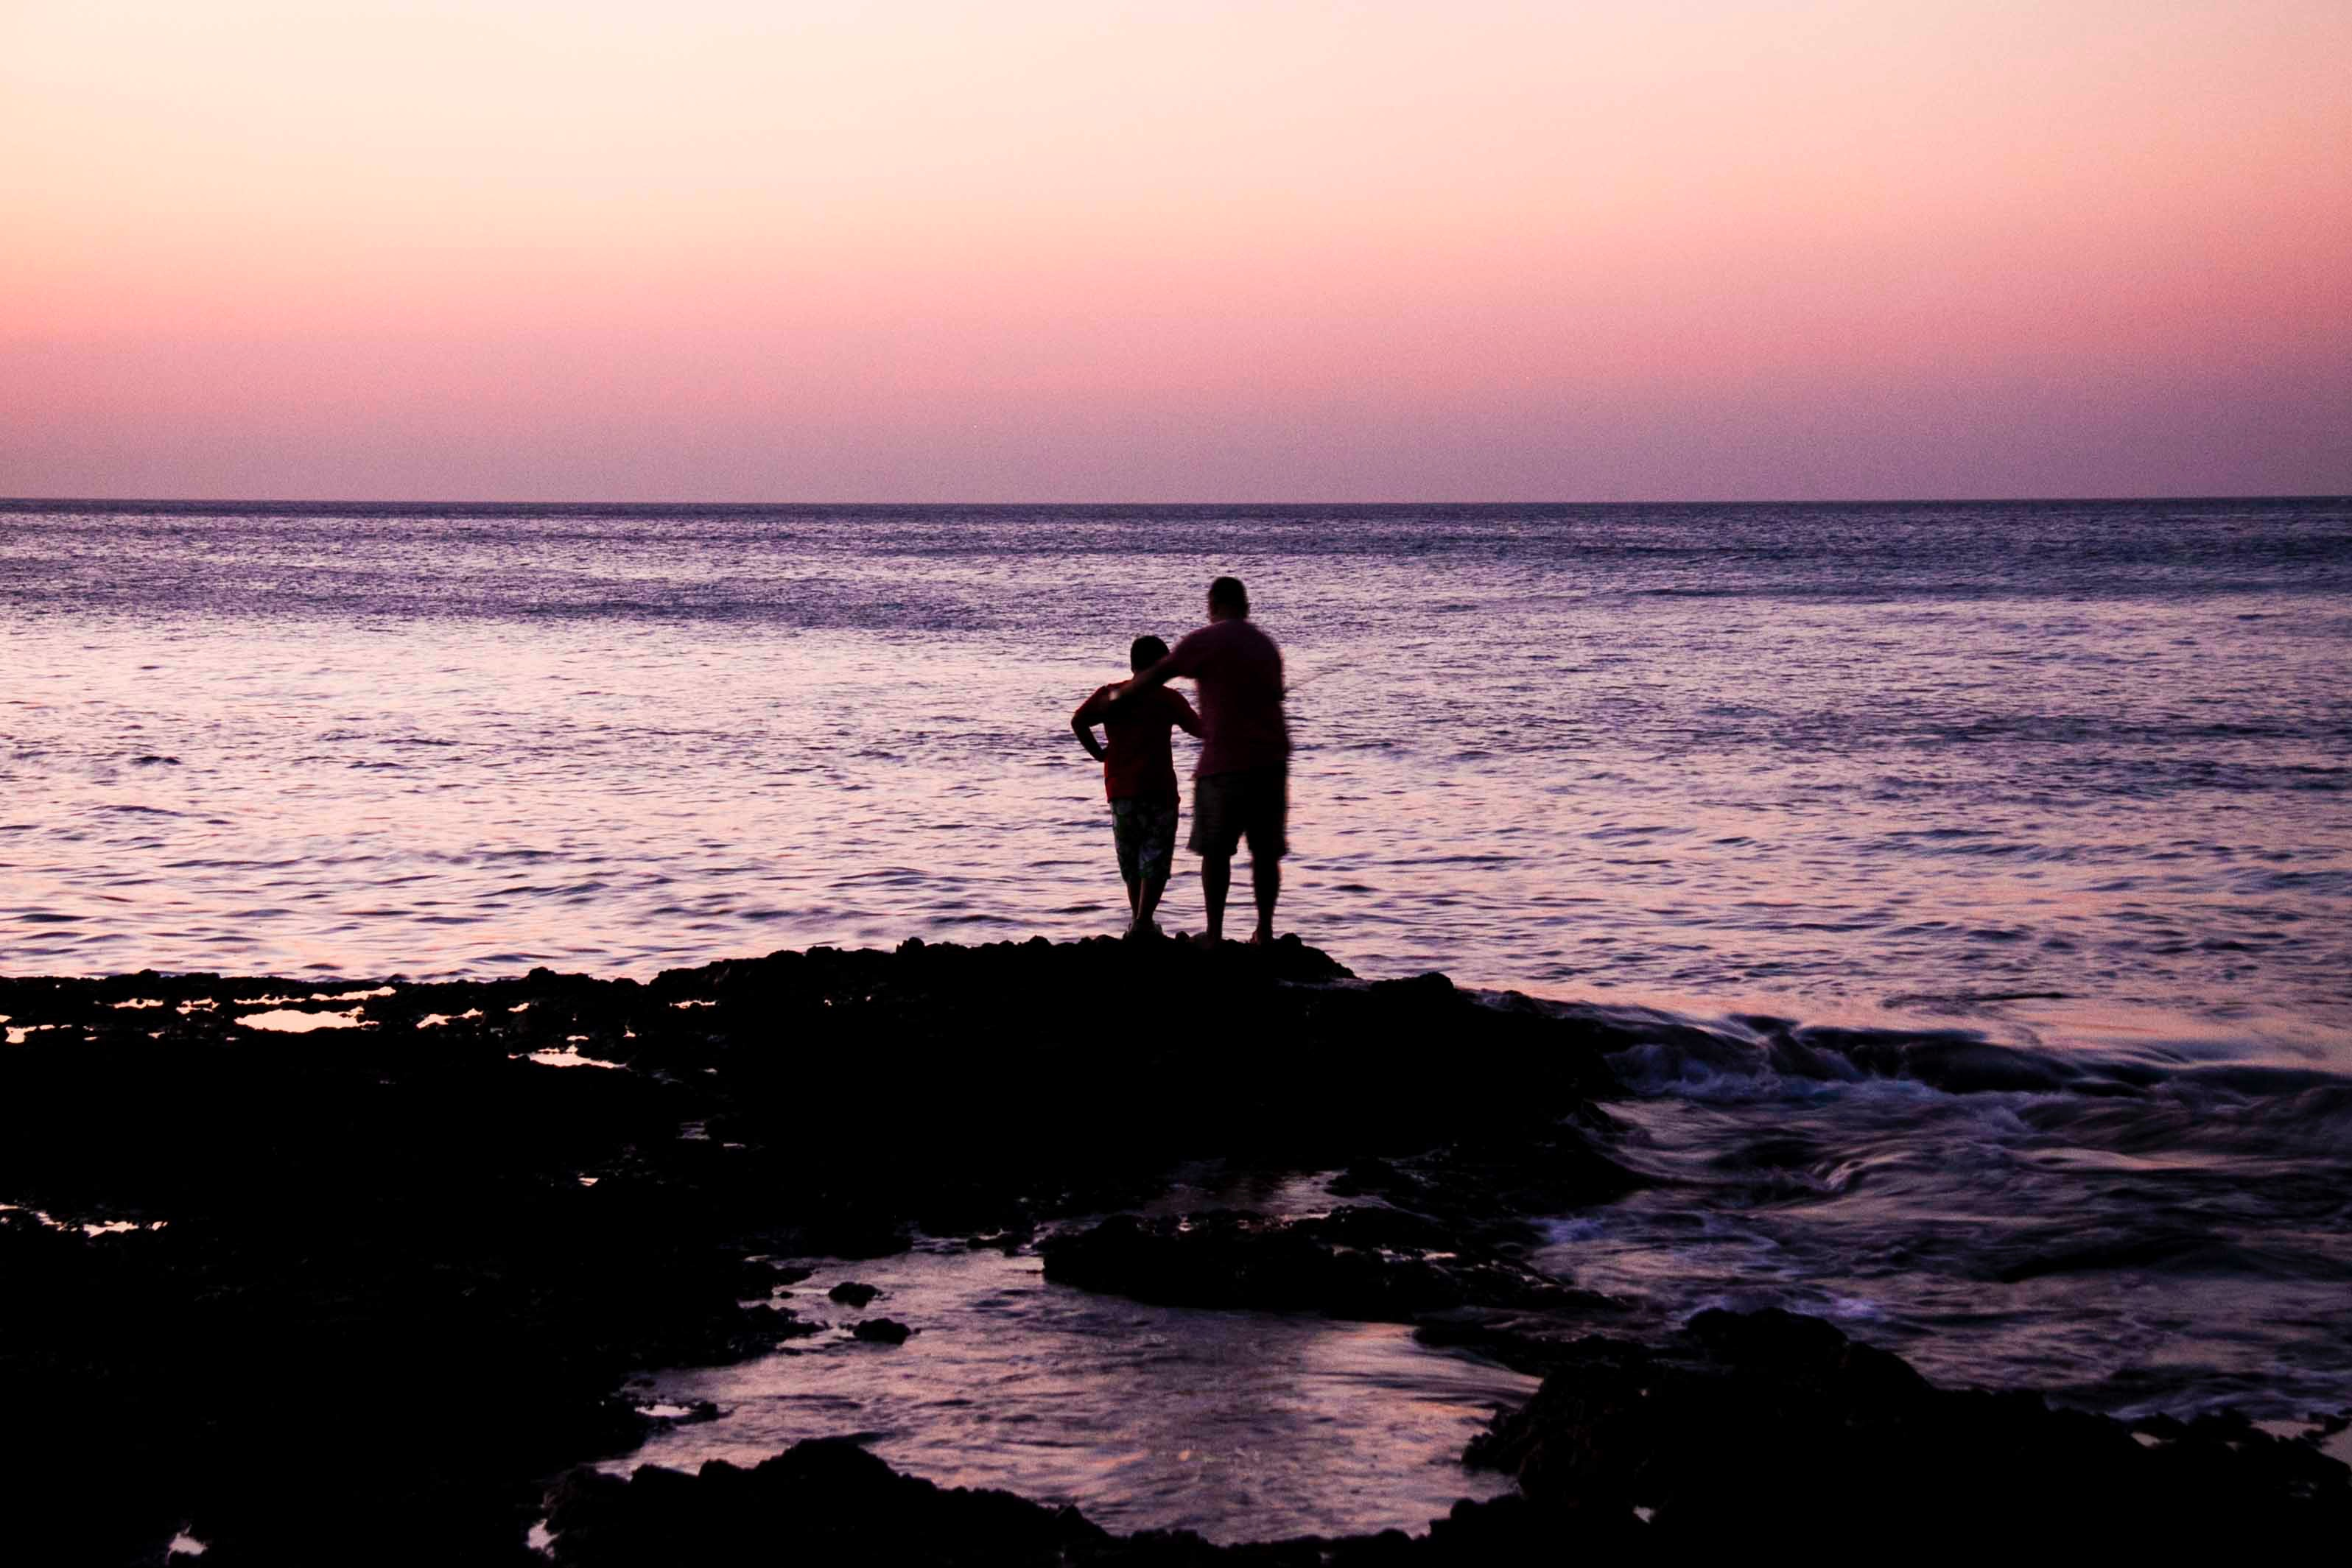 Father and child near on body of water during sunset photo